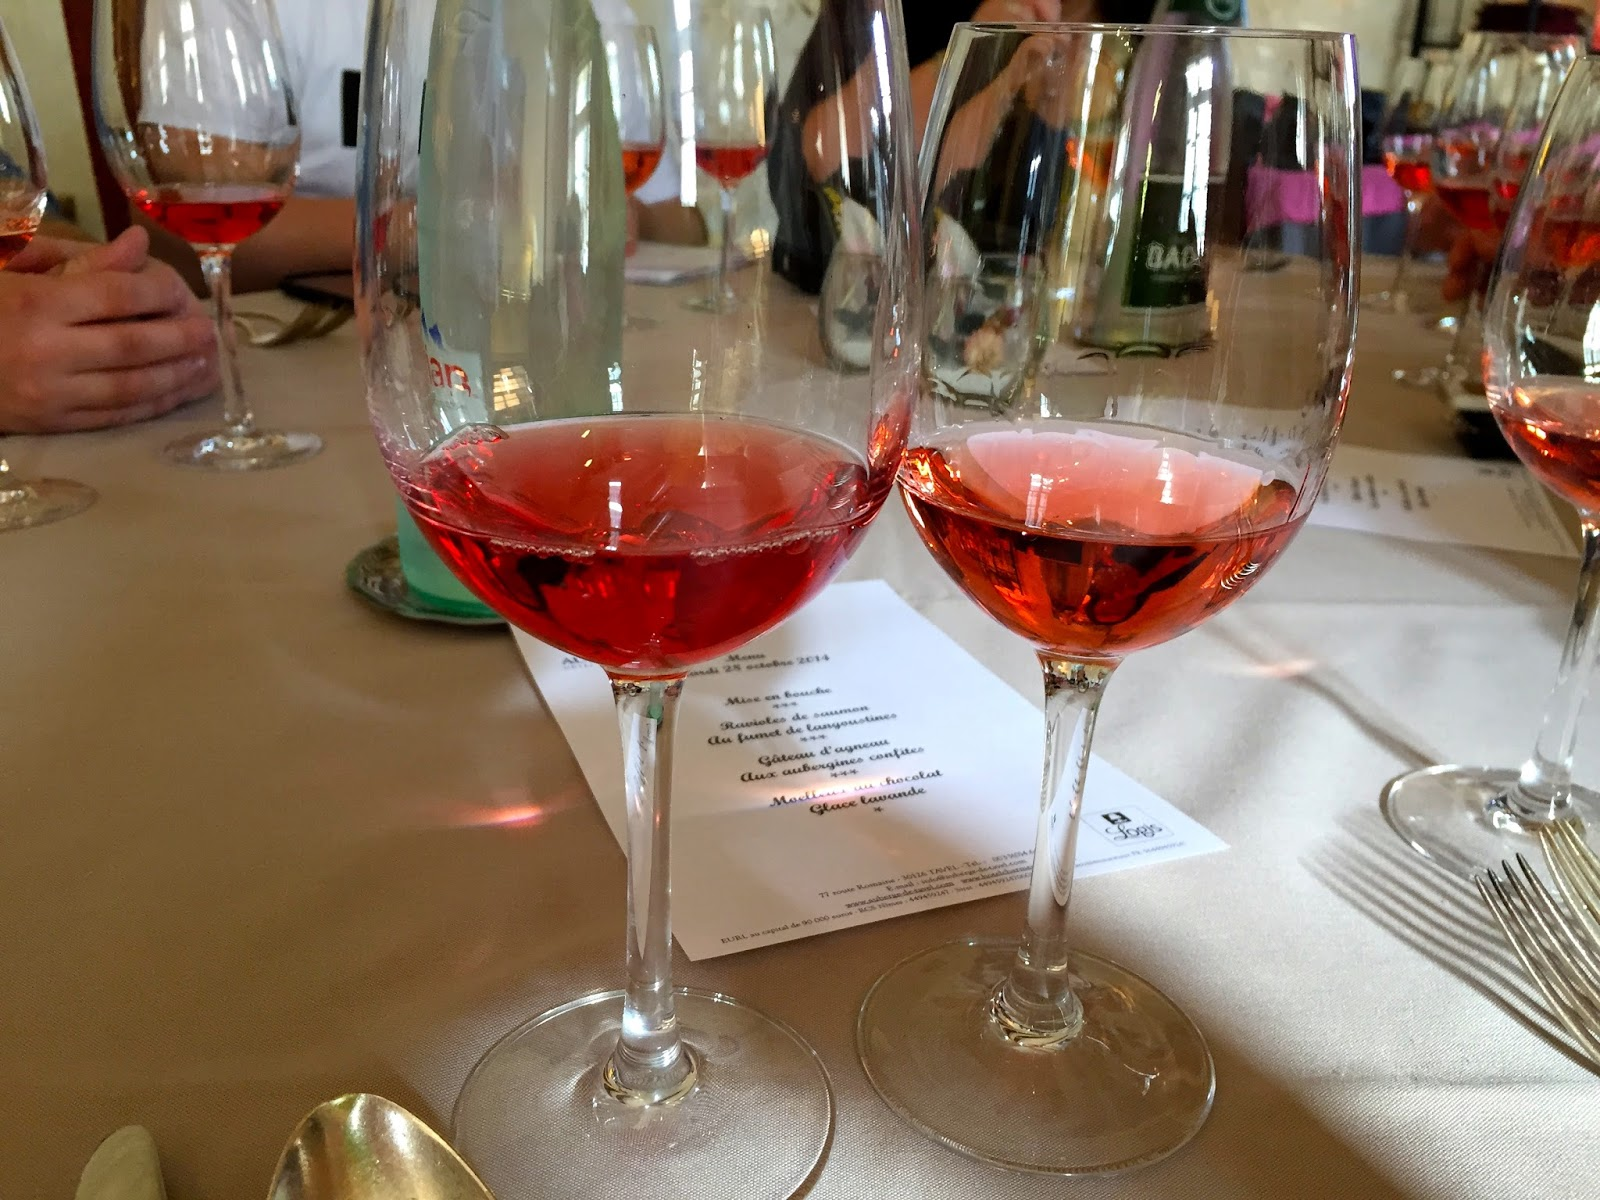 The Best Rosé Wines Tavel AOC Rosé Wines Of Course